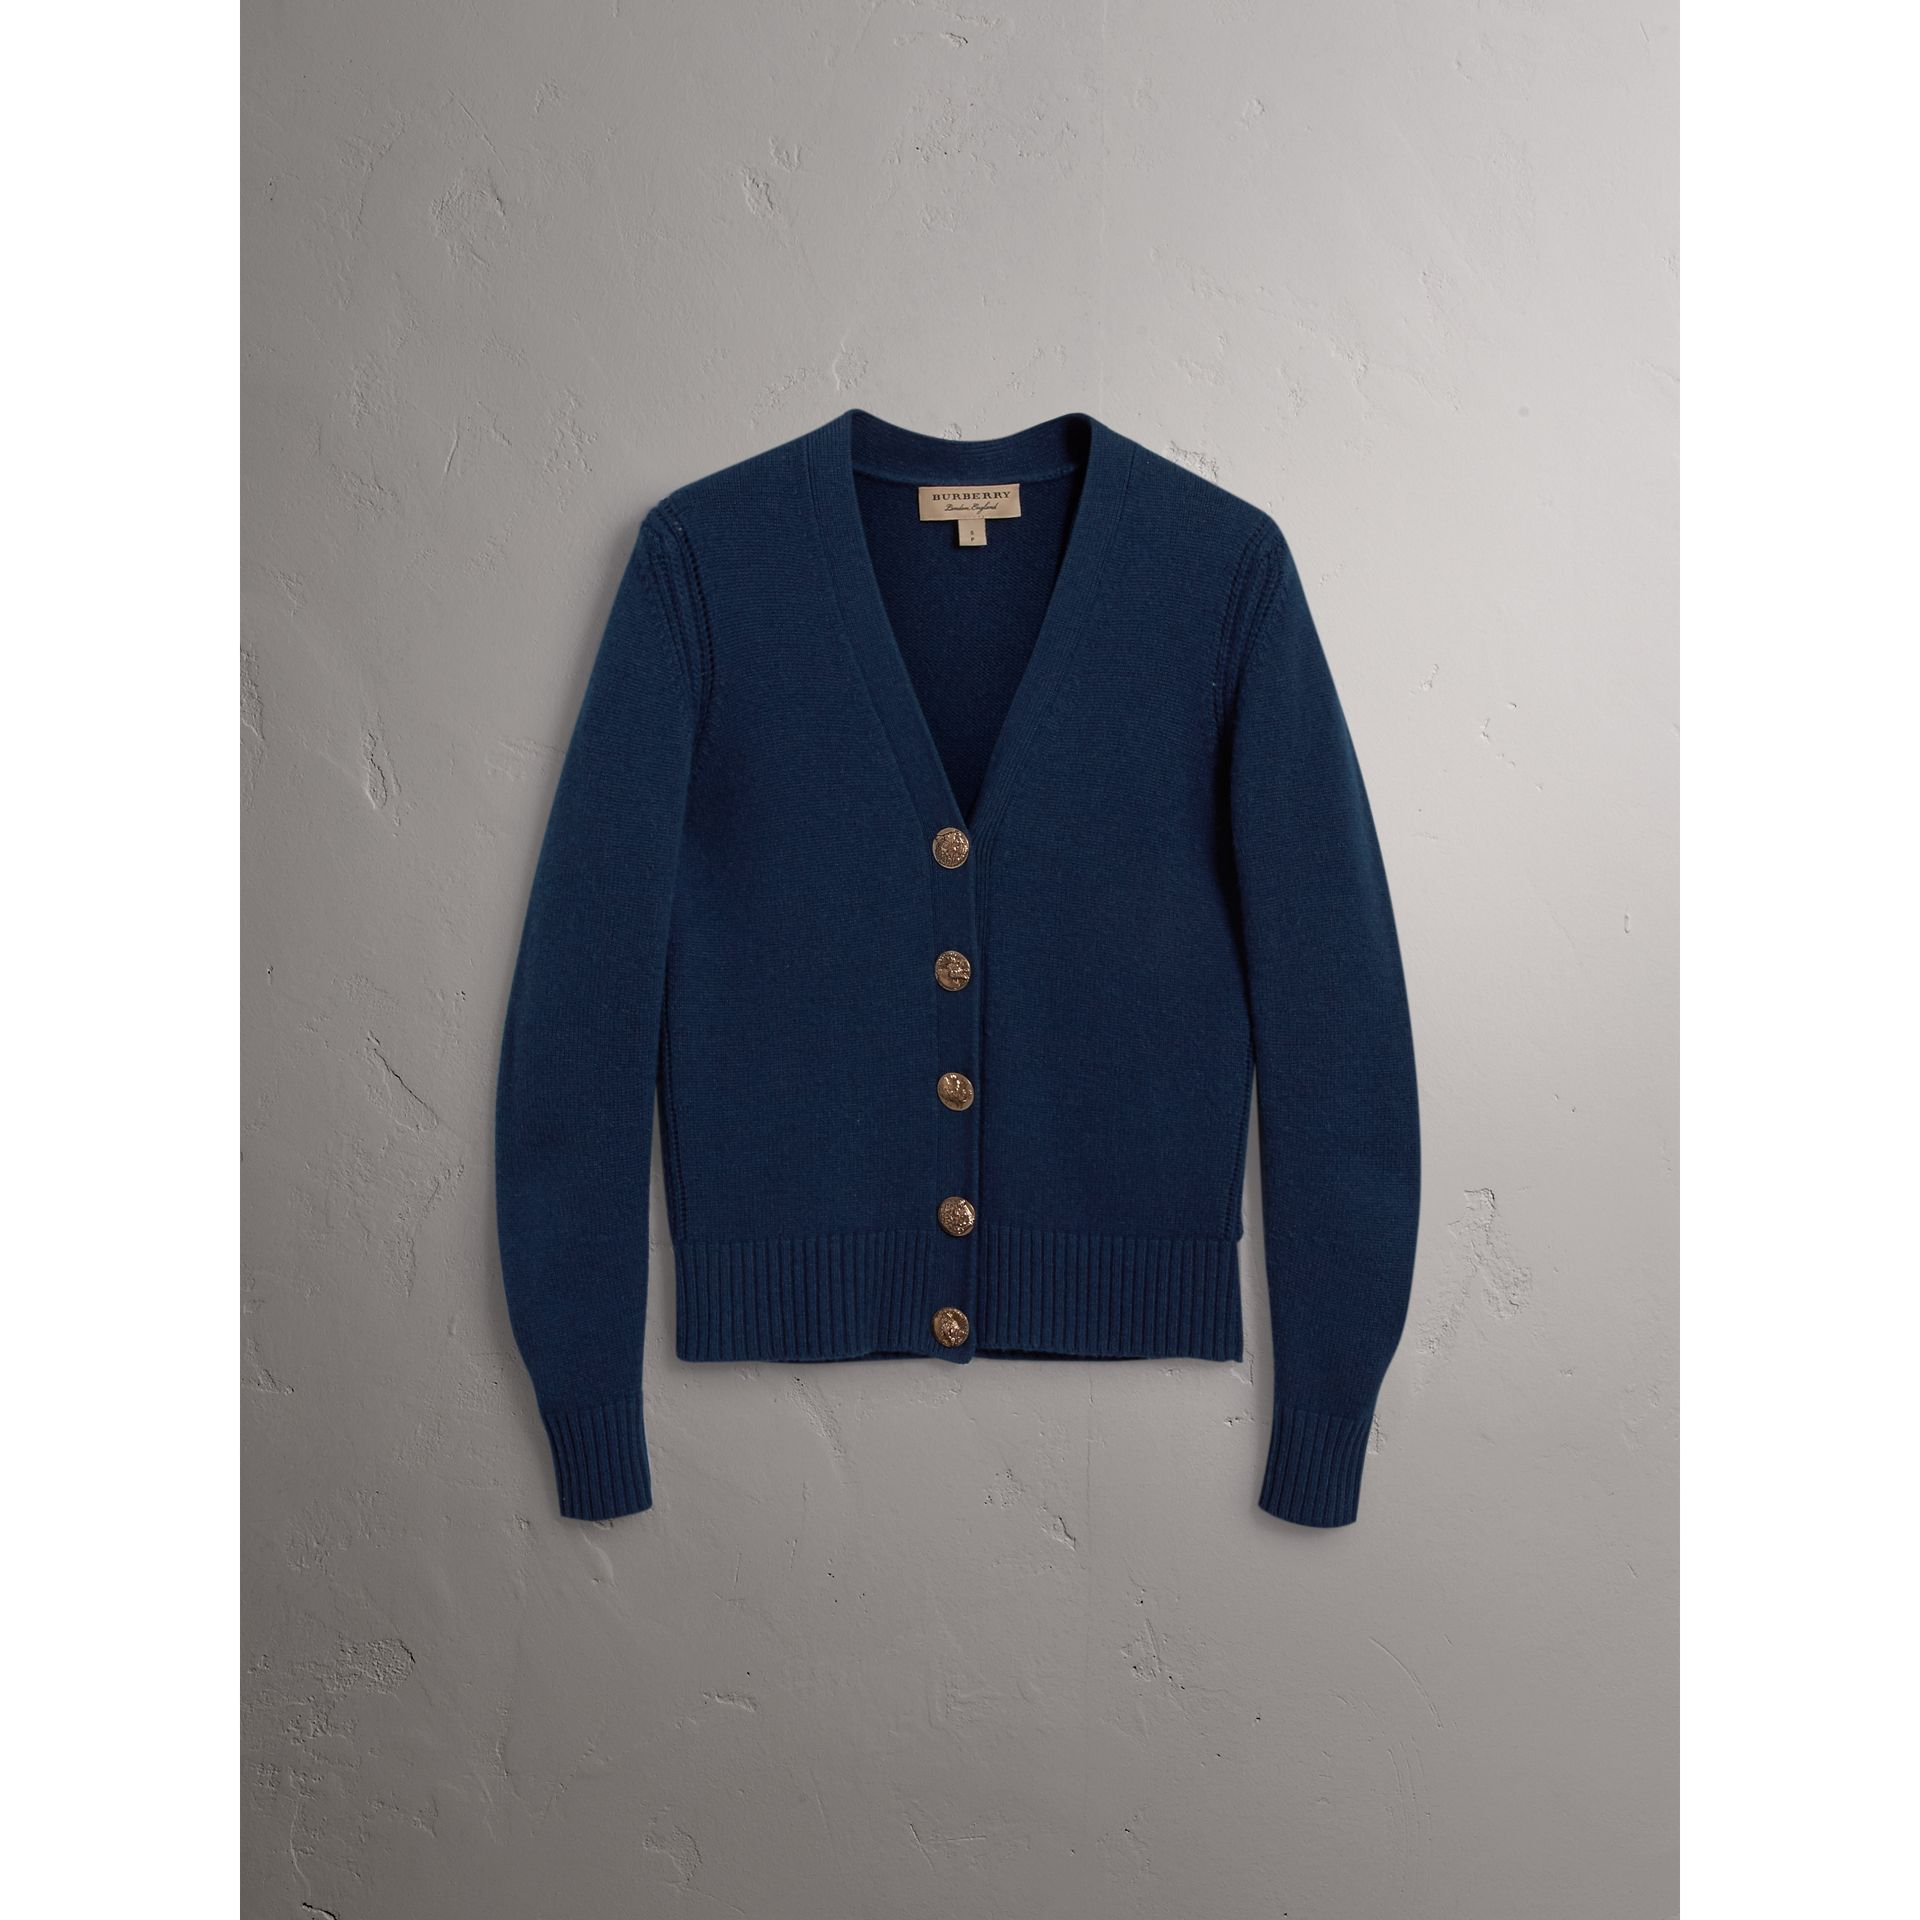 Bird Button Cashmere Cardigan in Navy - Women | Burberry Australia - gallery image 3